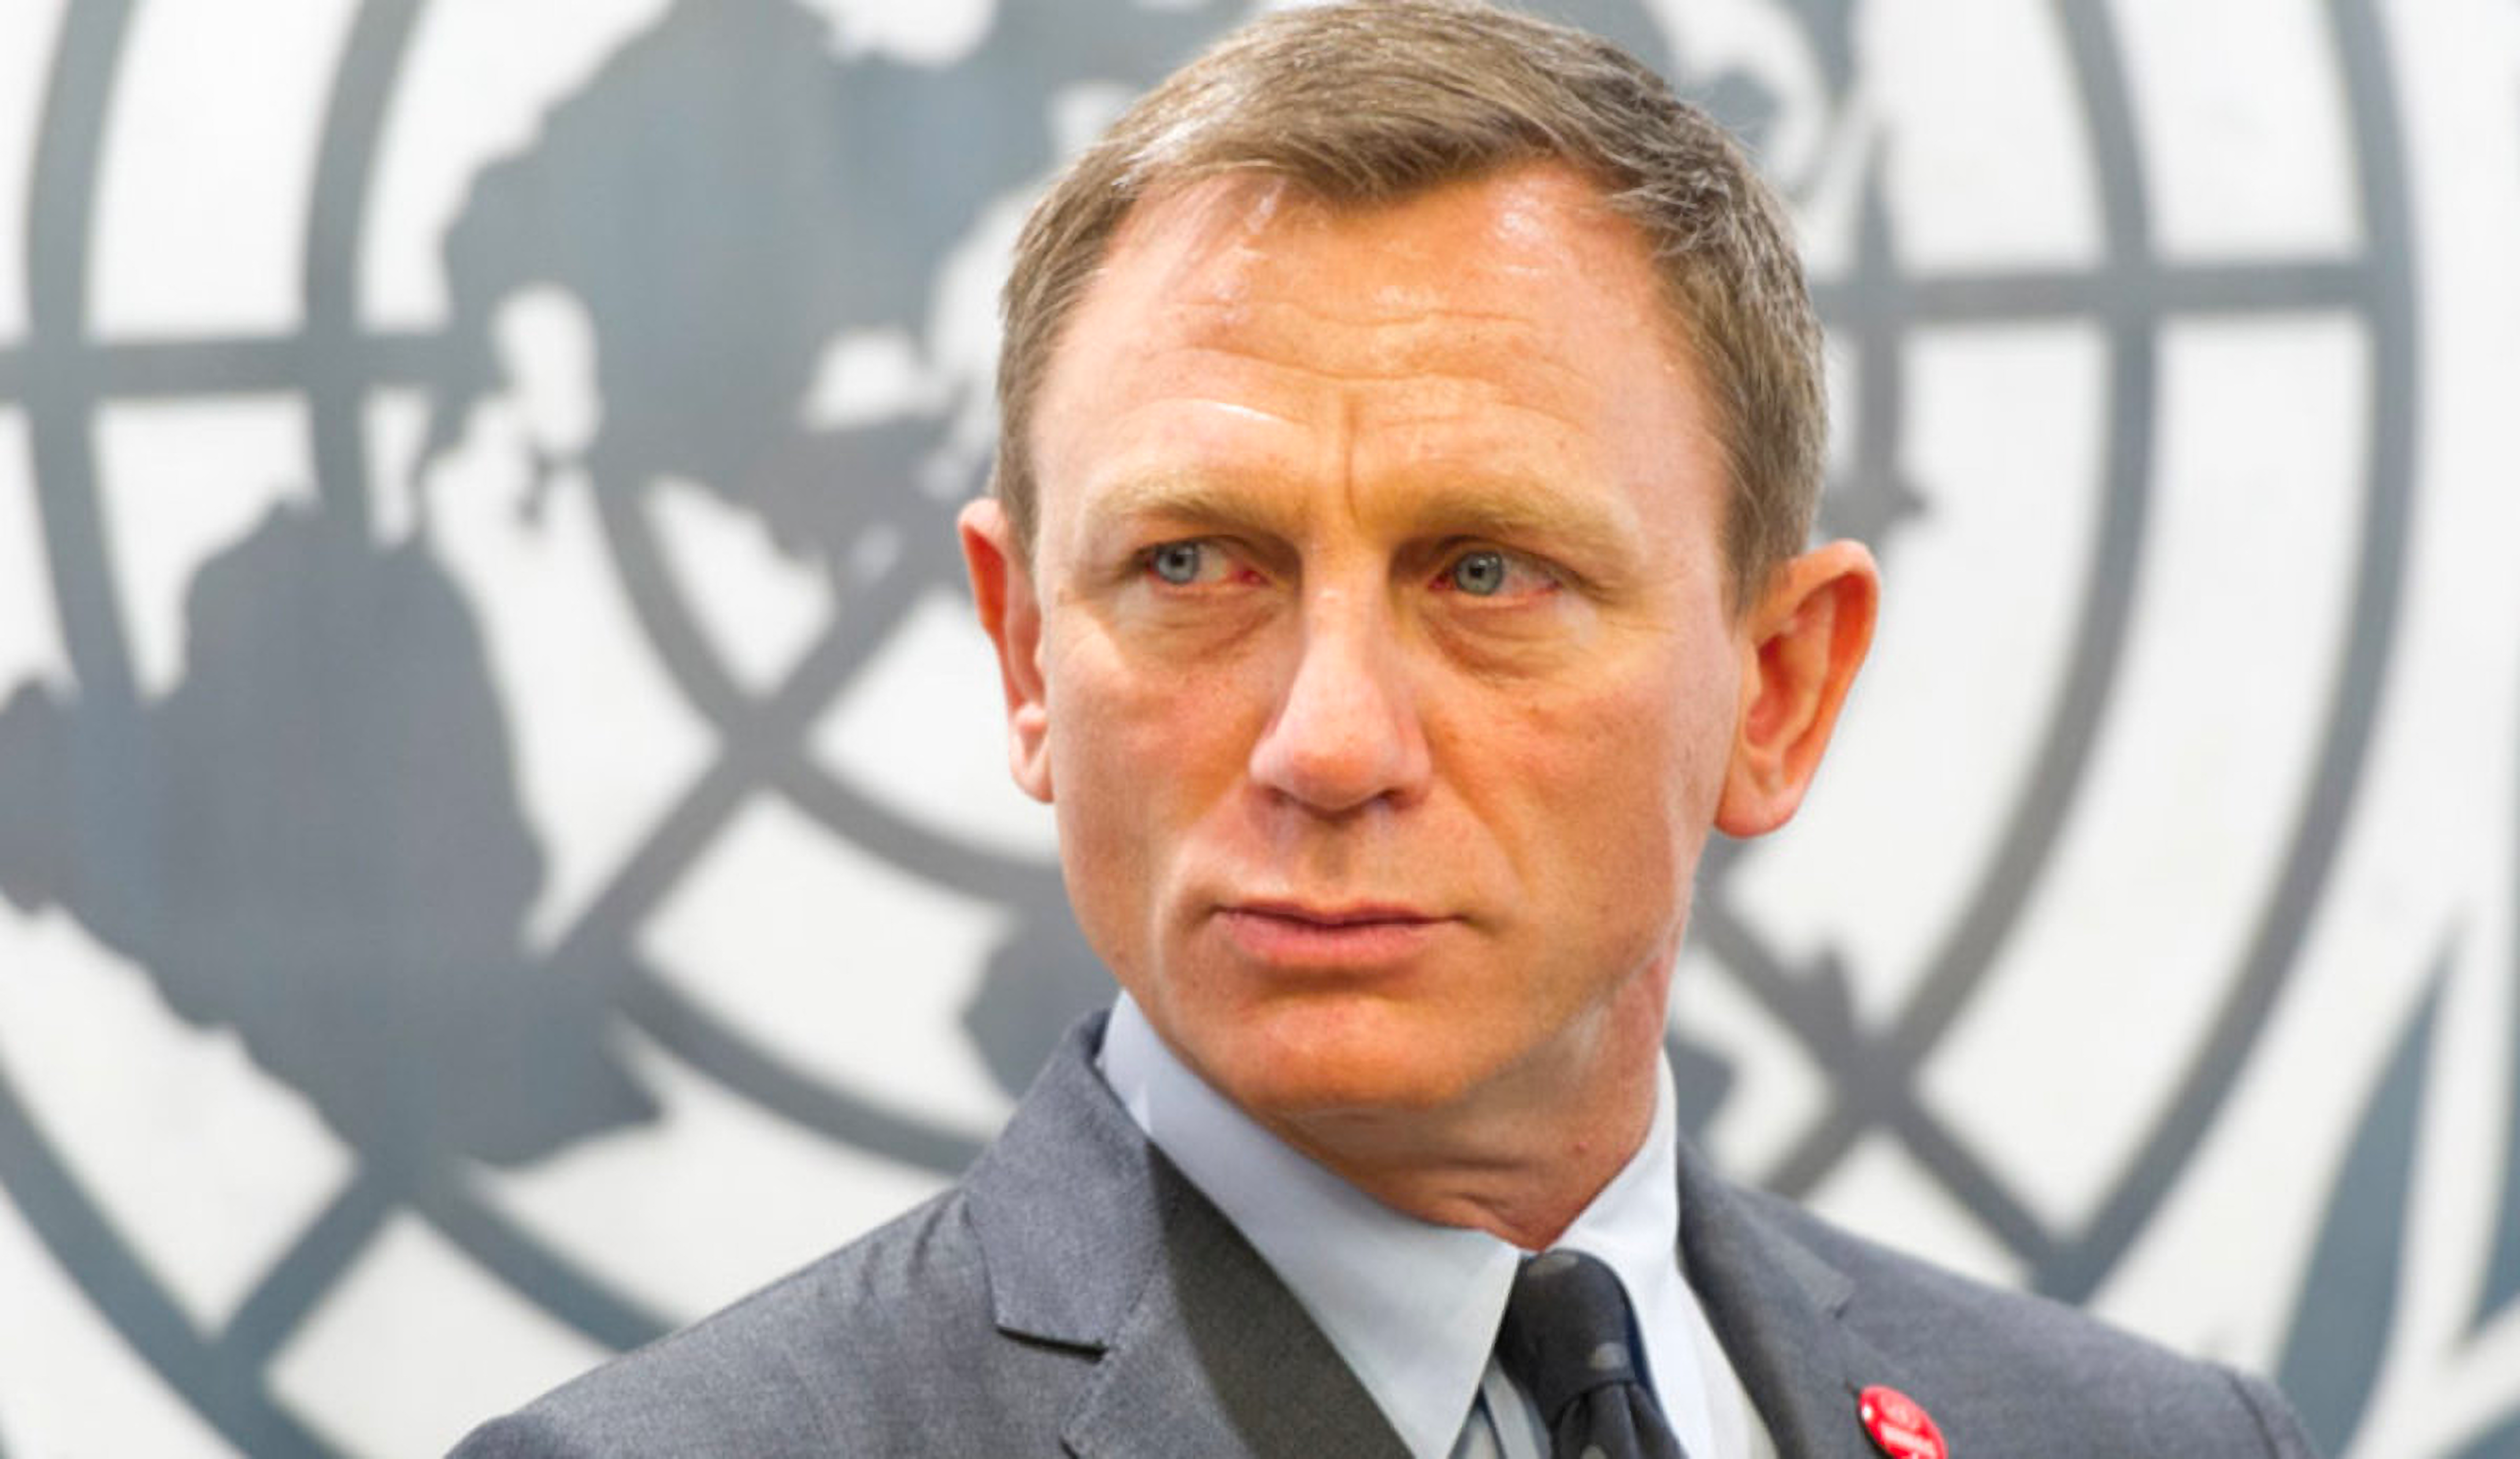 World-renowned actor Daniel Craig is the first UN Global Advocate for the Elimination of Mines and Explosive Hazards. ©UN photo/ Mark Garten